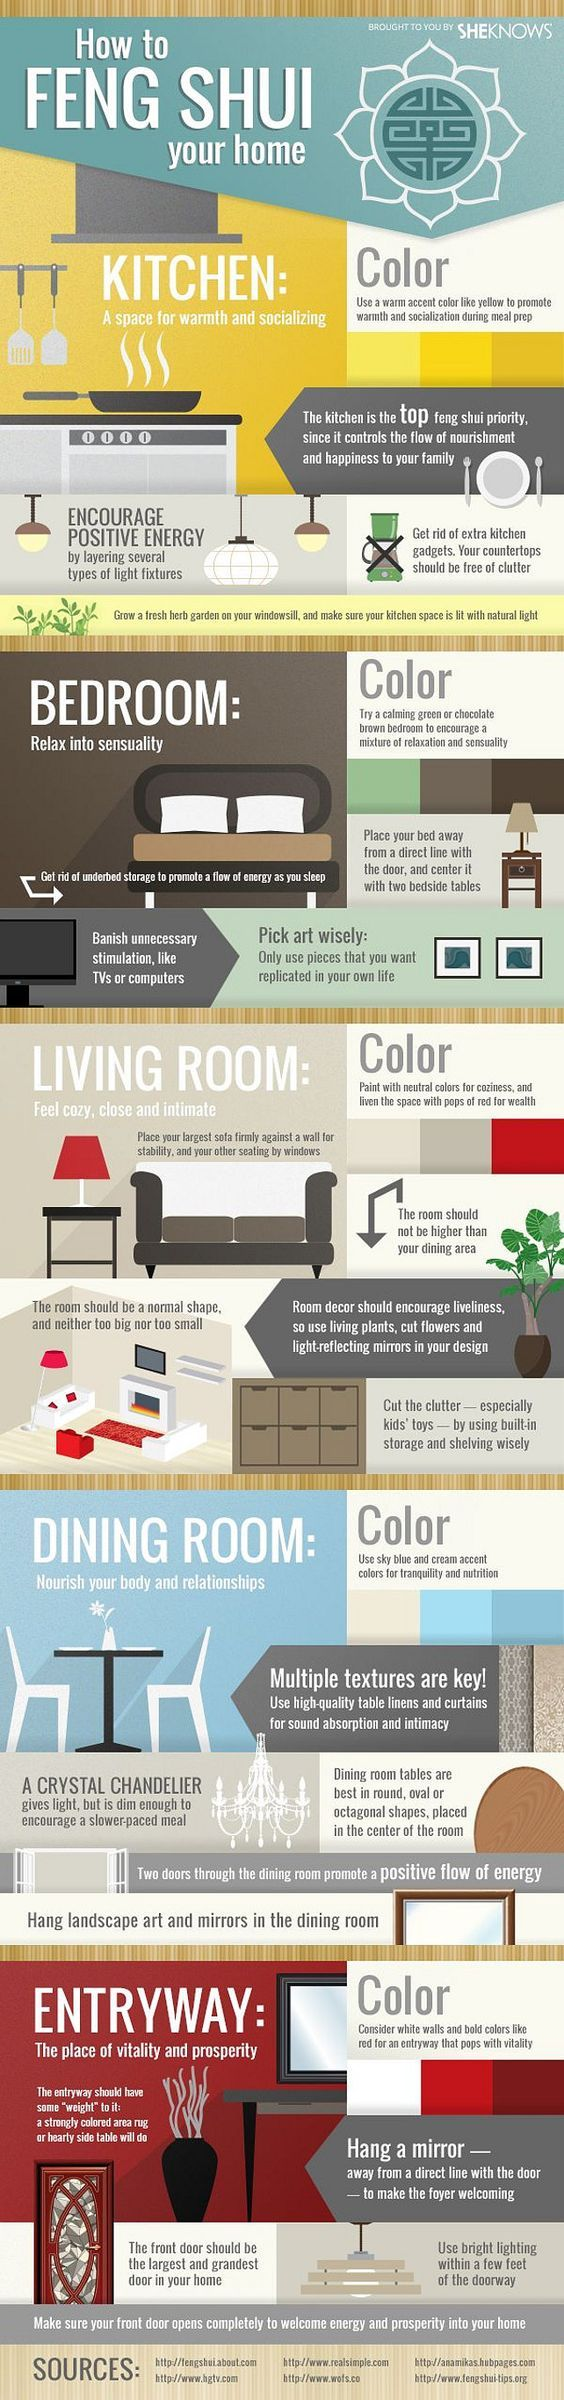 best 25 home decor trends 2016 ideas on pinterest eclectic 50 amazingly clever cheat sheets to simplify home decorating projects page how to feng shui your home 50 amazingly clever cheat sheets to simplify home